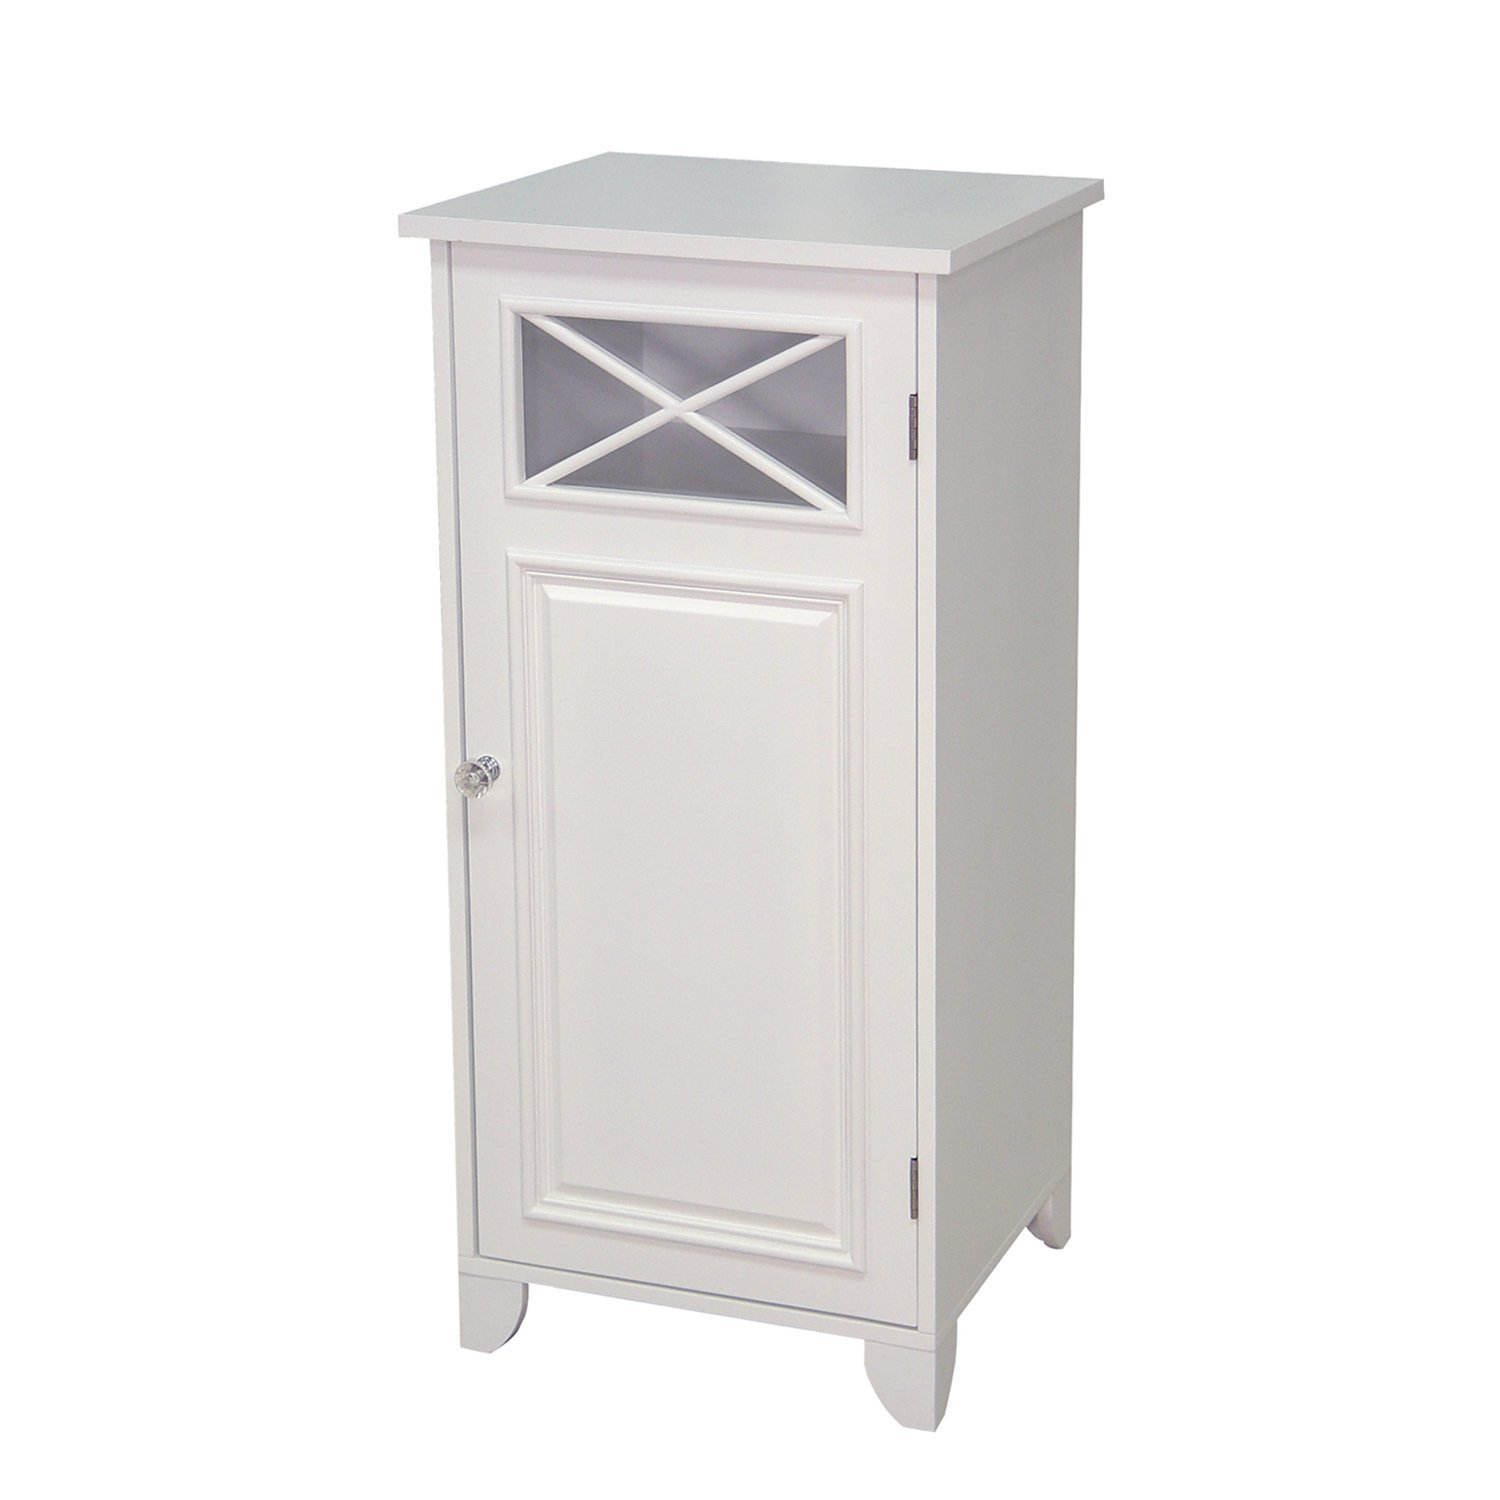 Bathroom Floor Cabinet With Single Door